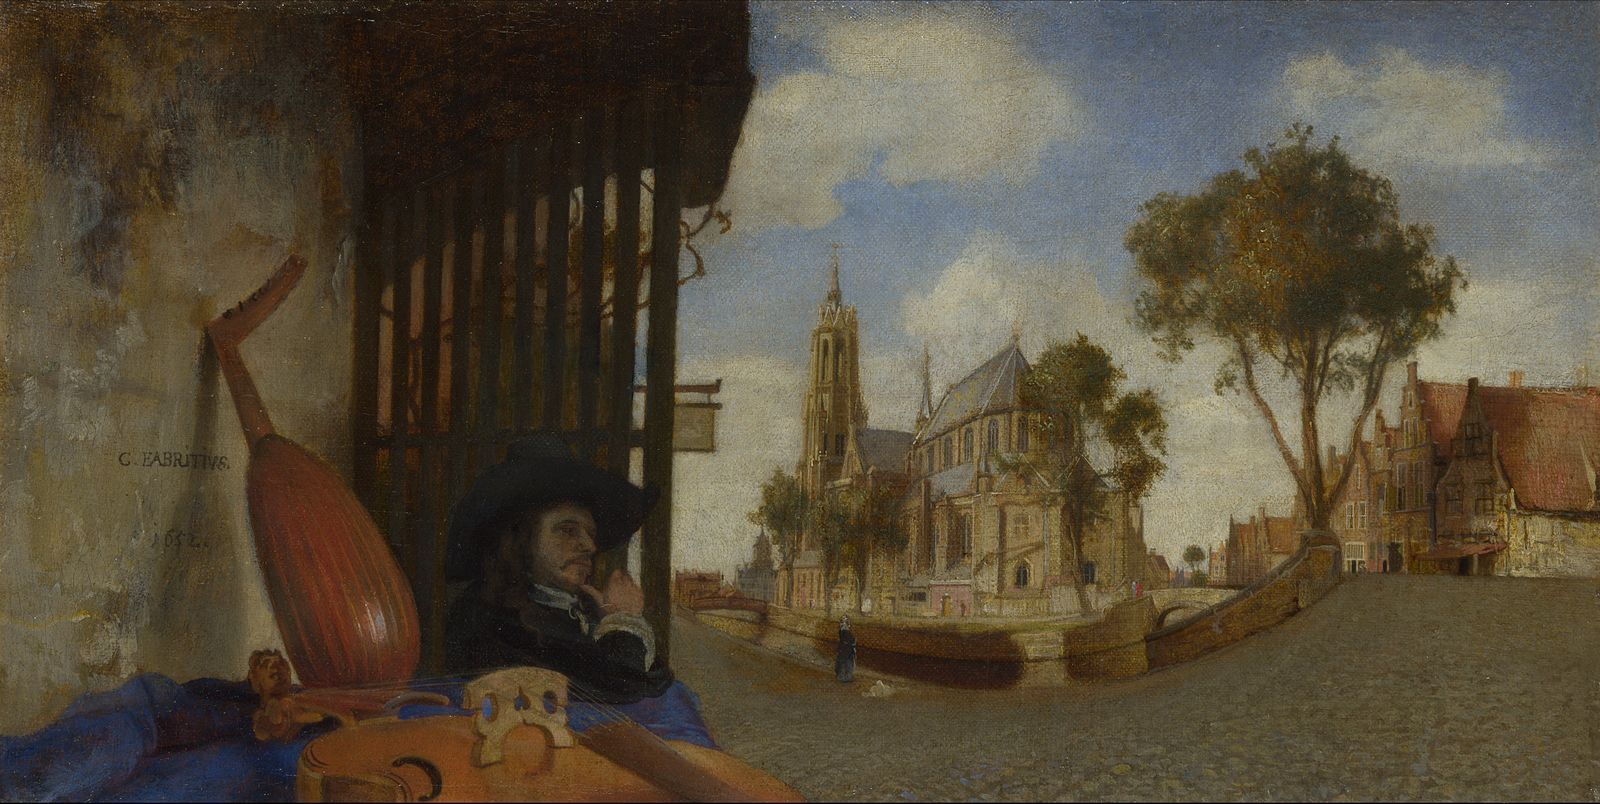 The case of mistaken identity: Carel Fabritius as his master Rembrandt